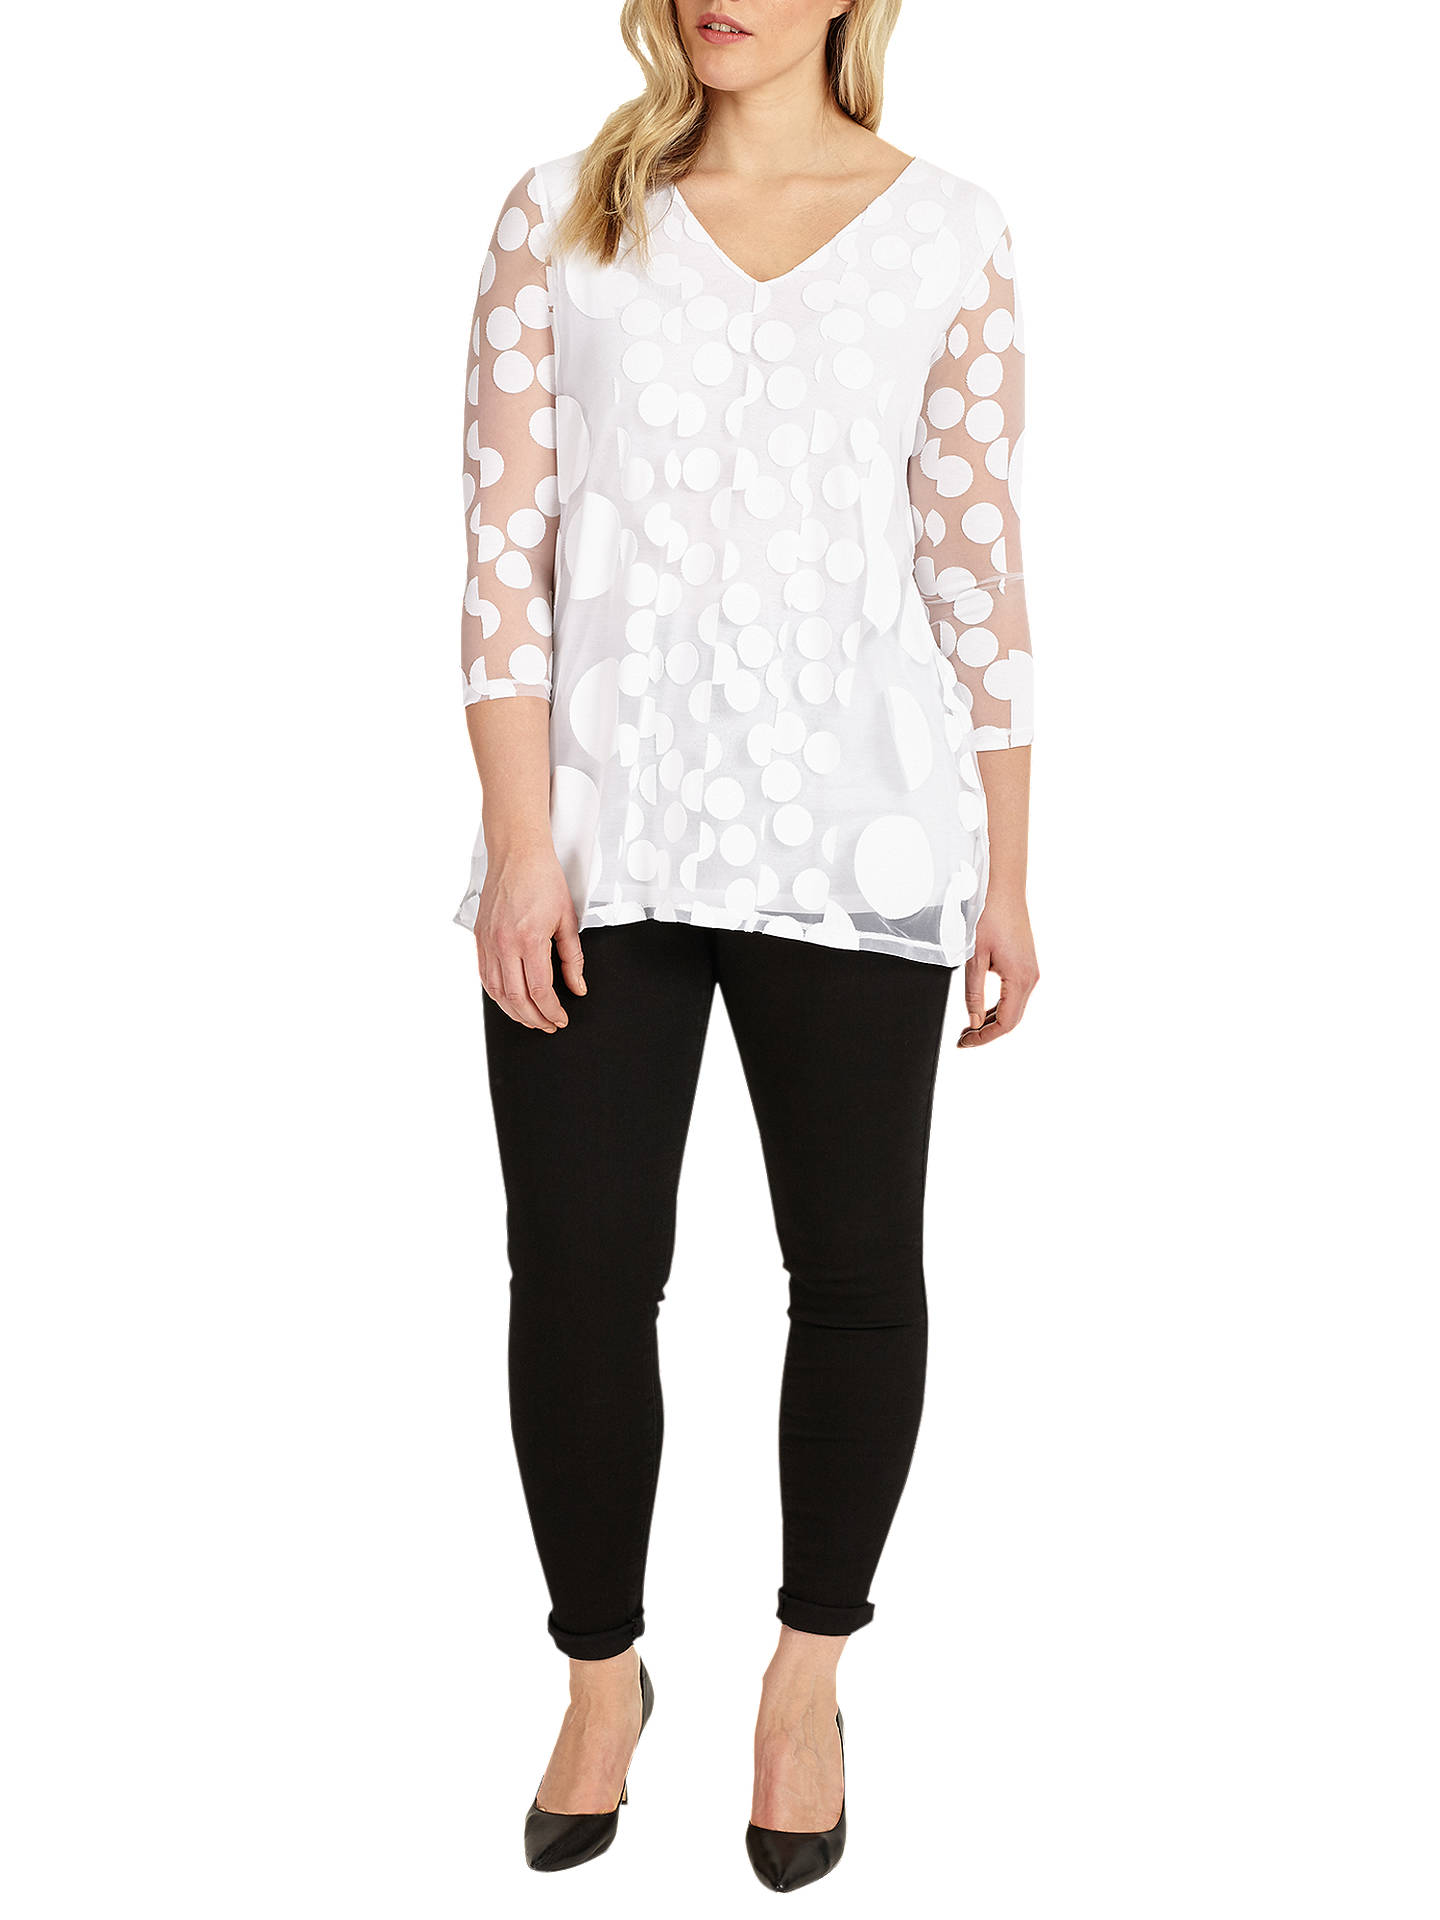 BuyStudio 8 Ashanti Top, White, 12 Online at johnlewis.com